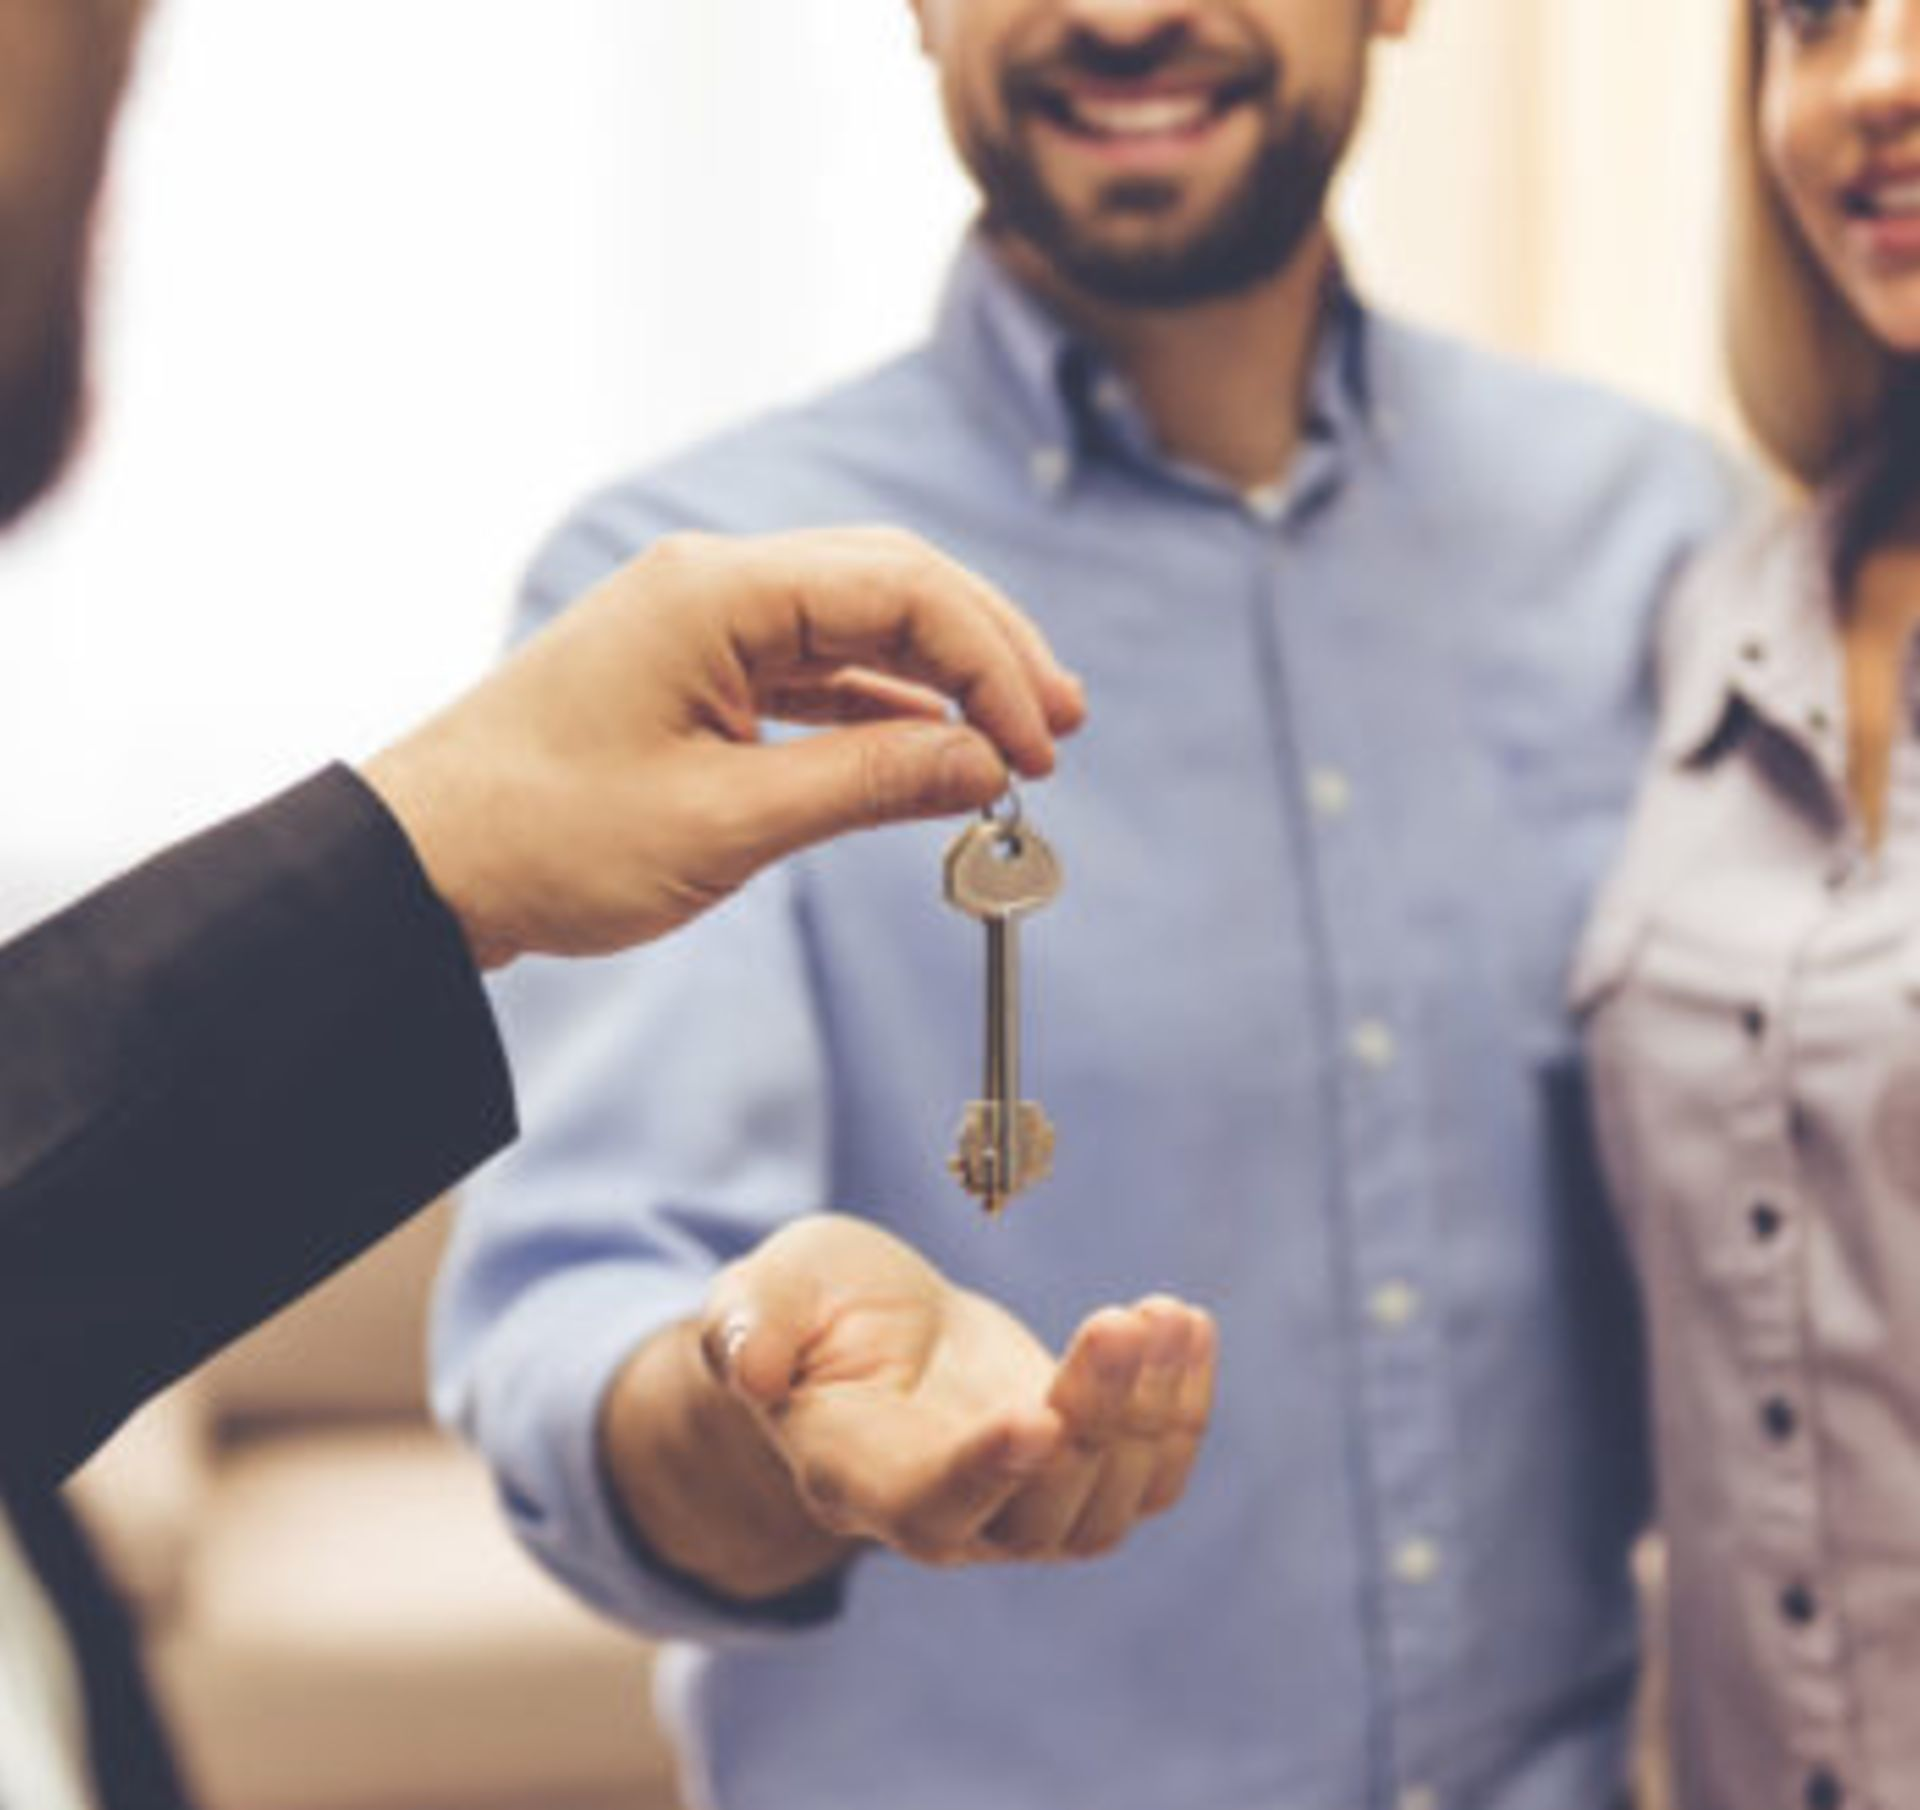 Buying a Home? Let's talk data security